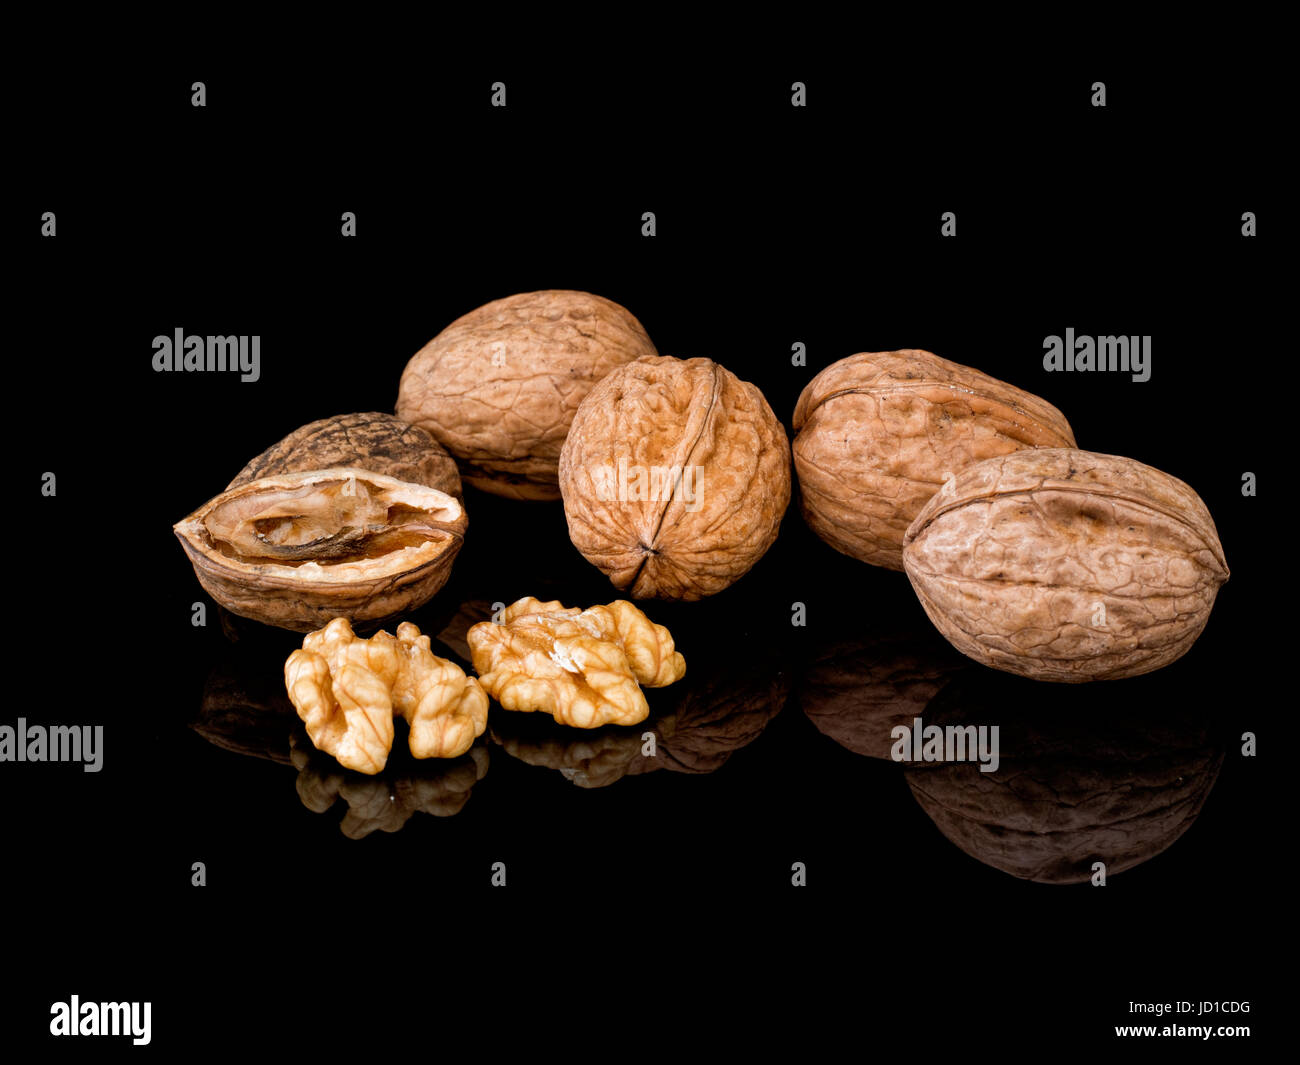 Walnuts. Healthy snack. Contain melatonin to aid good sleep plus antioxidants and Omega-3 fatty acids to reduce - Stock Image